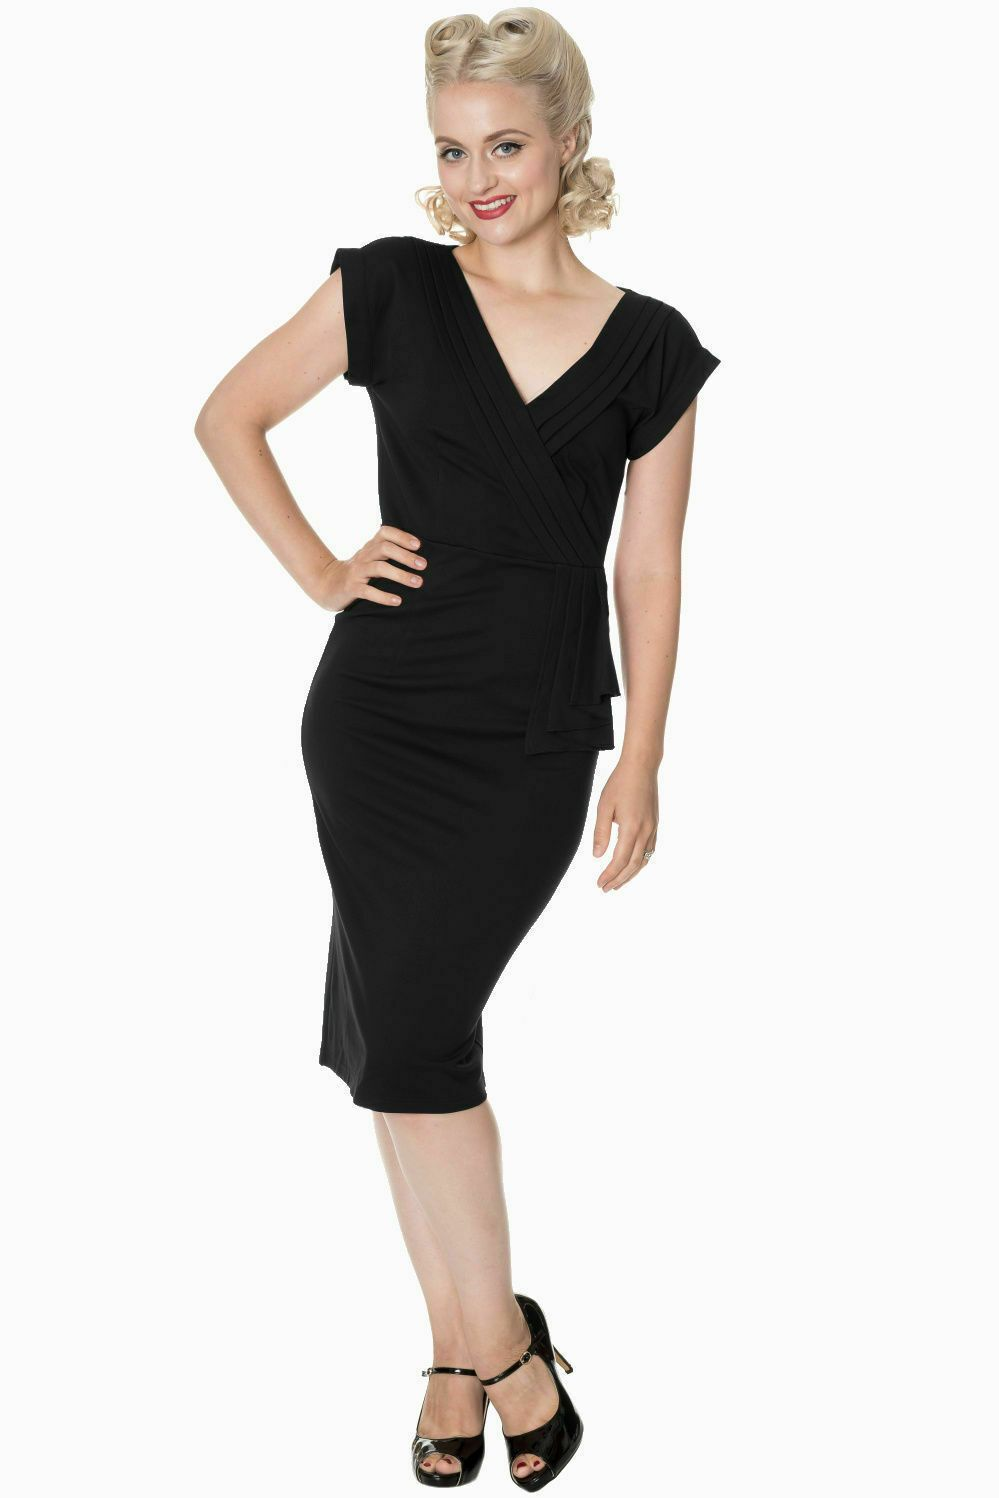 Dancing Days by Banned - Evening Chic Dress in Black - Size Small Only